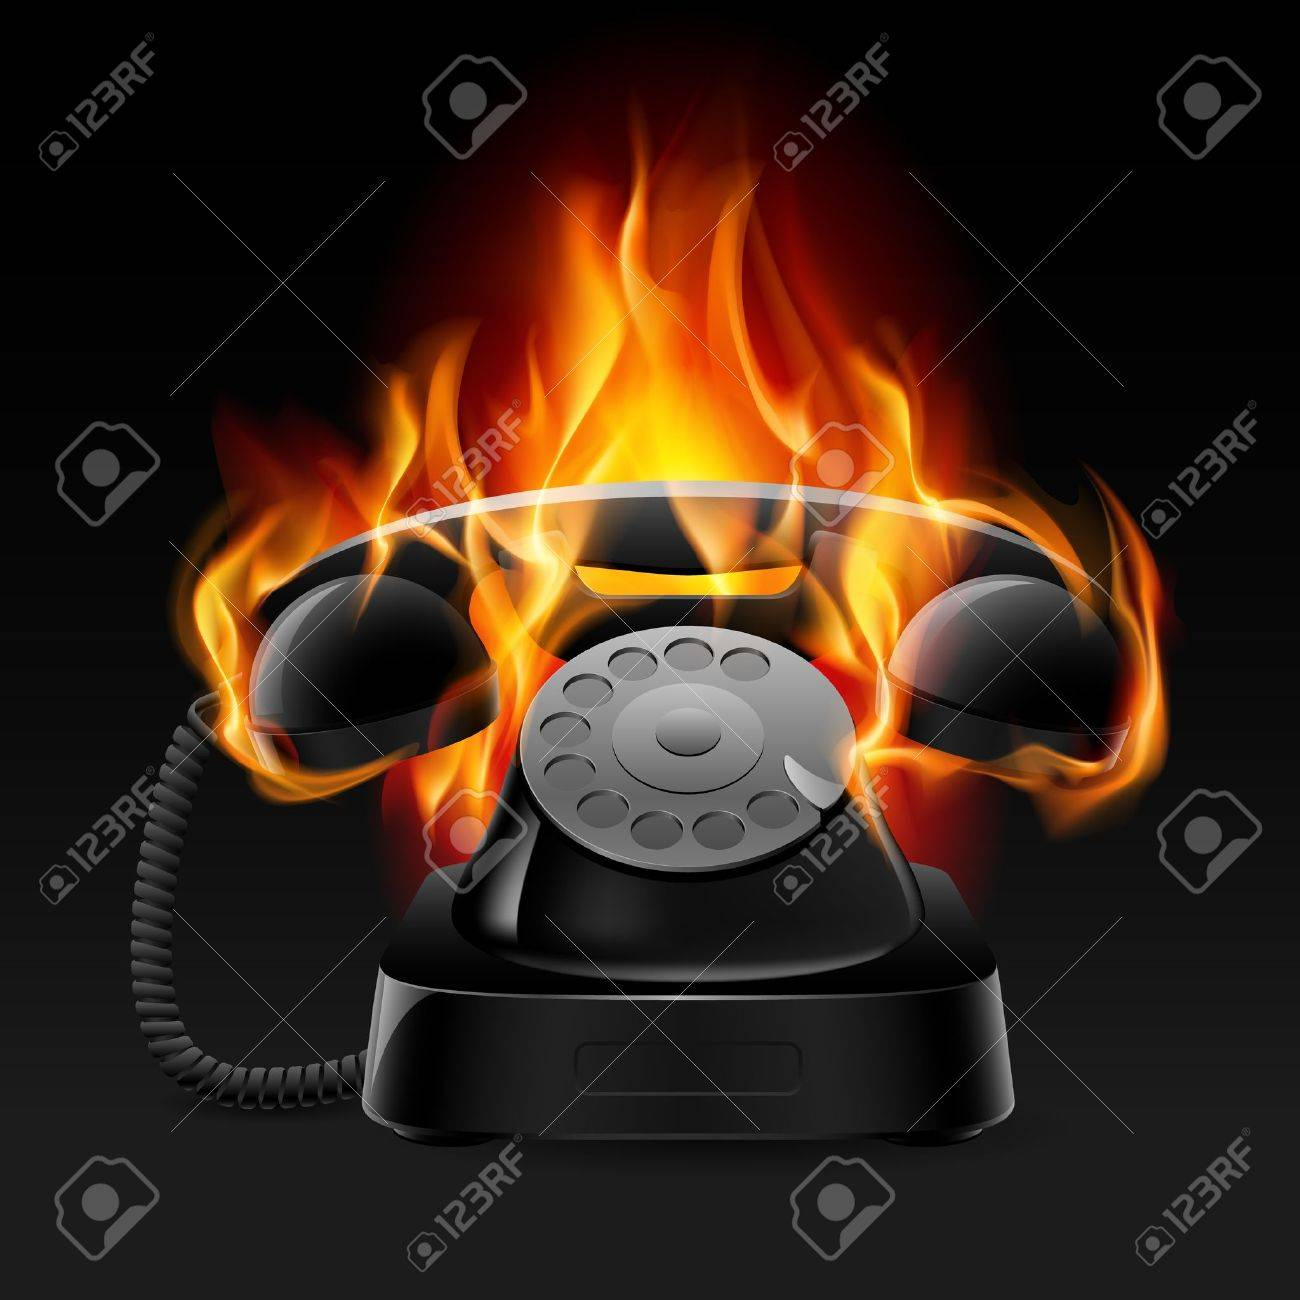 Realistic fire retro phone. Illustration of the designer on a black background - 10289367